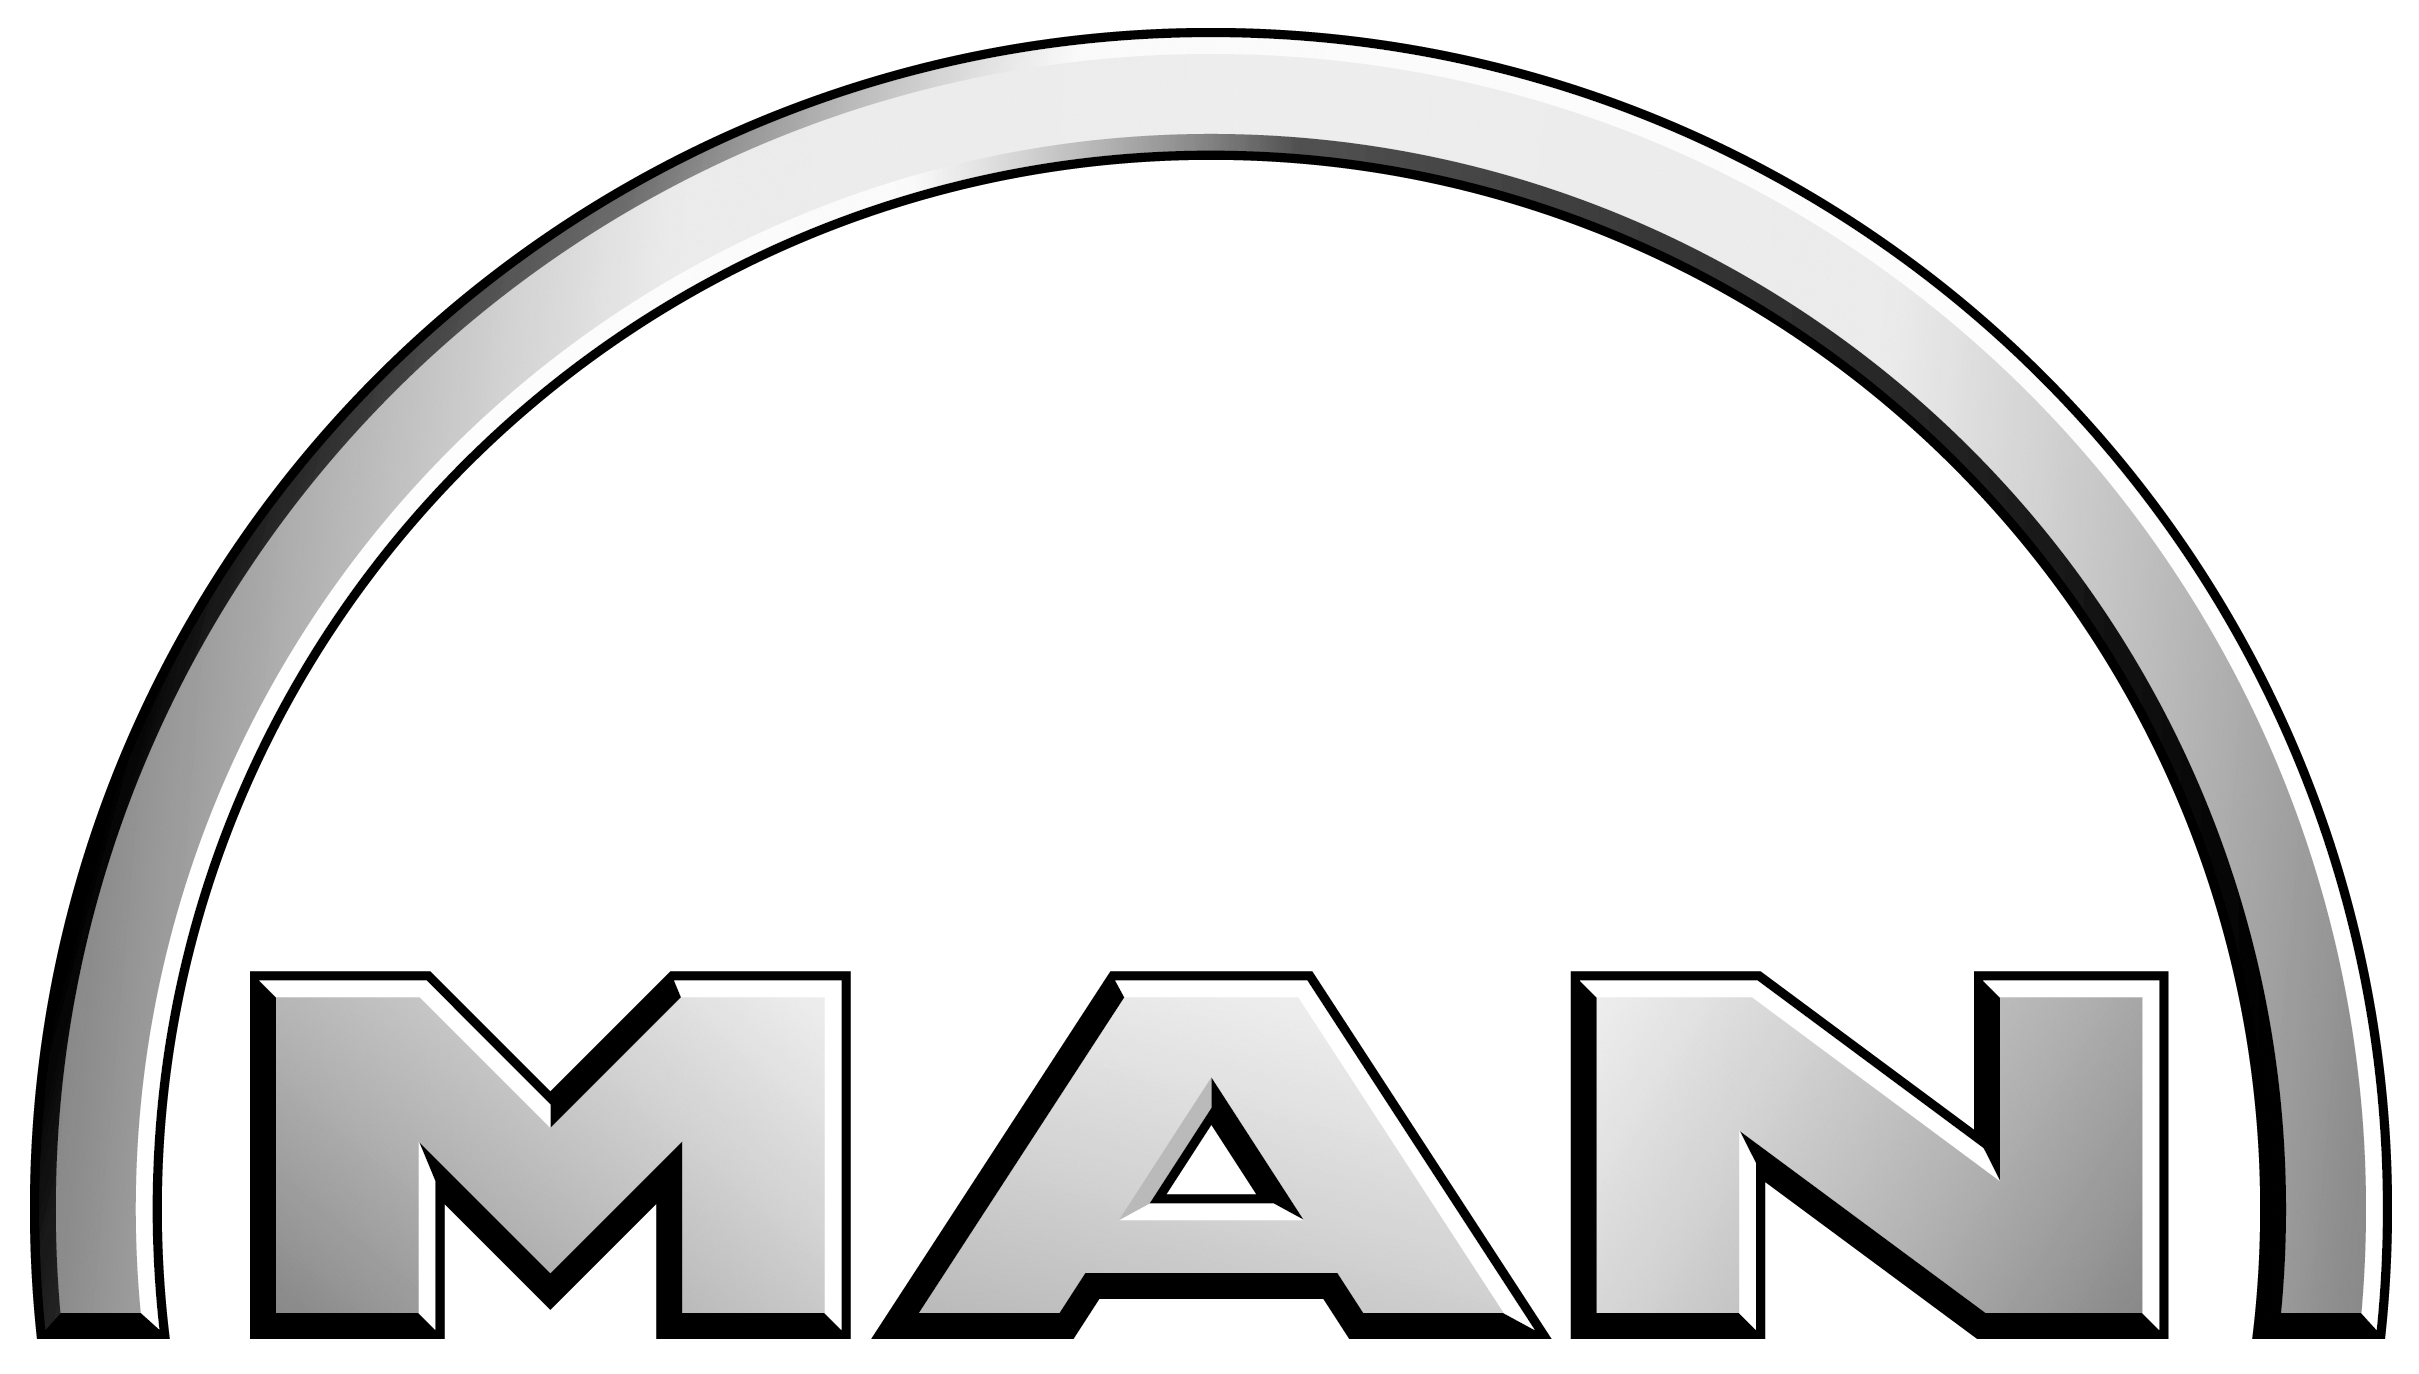 MAN TRUCK & BUS TRADE (CHINA) CO., LTD.